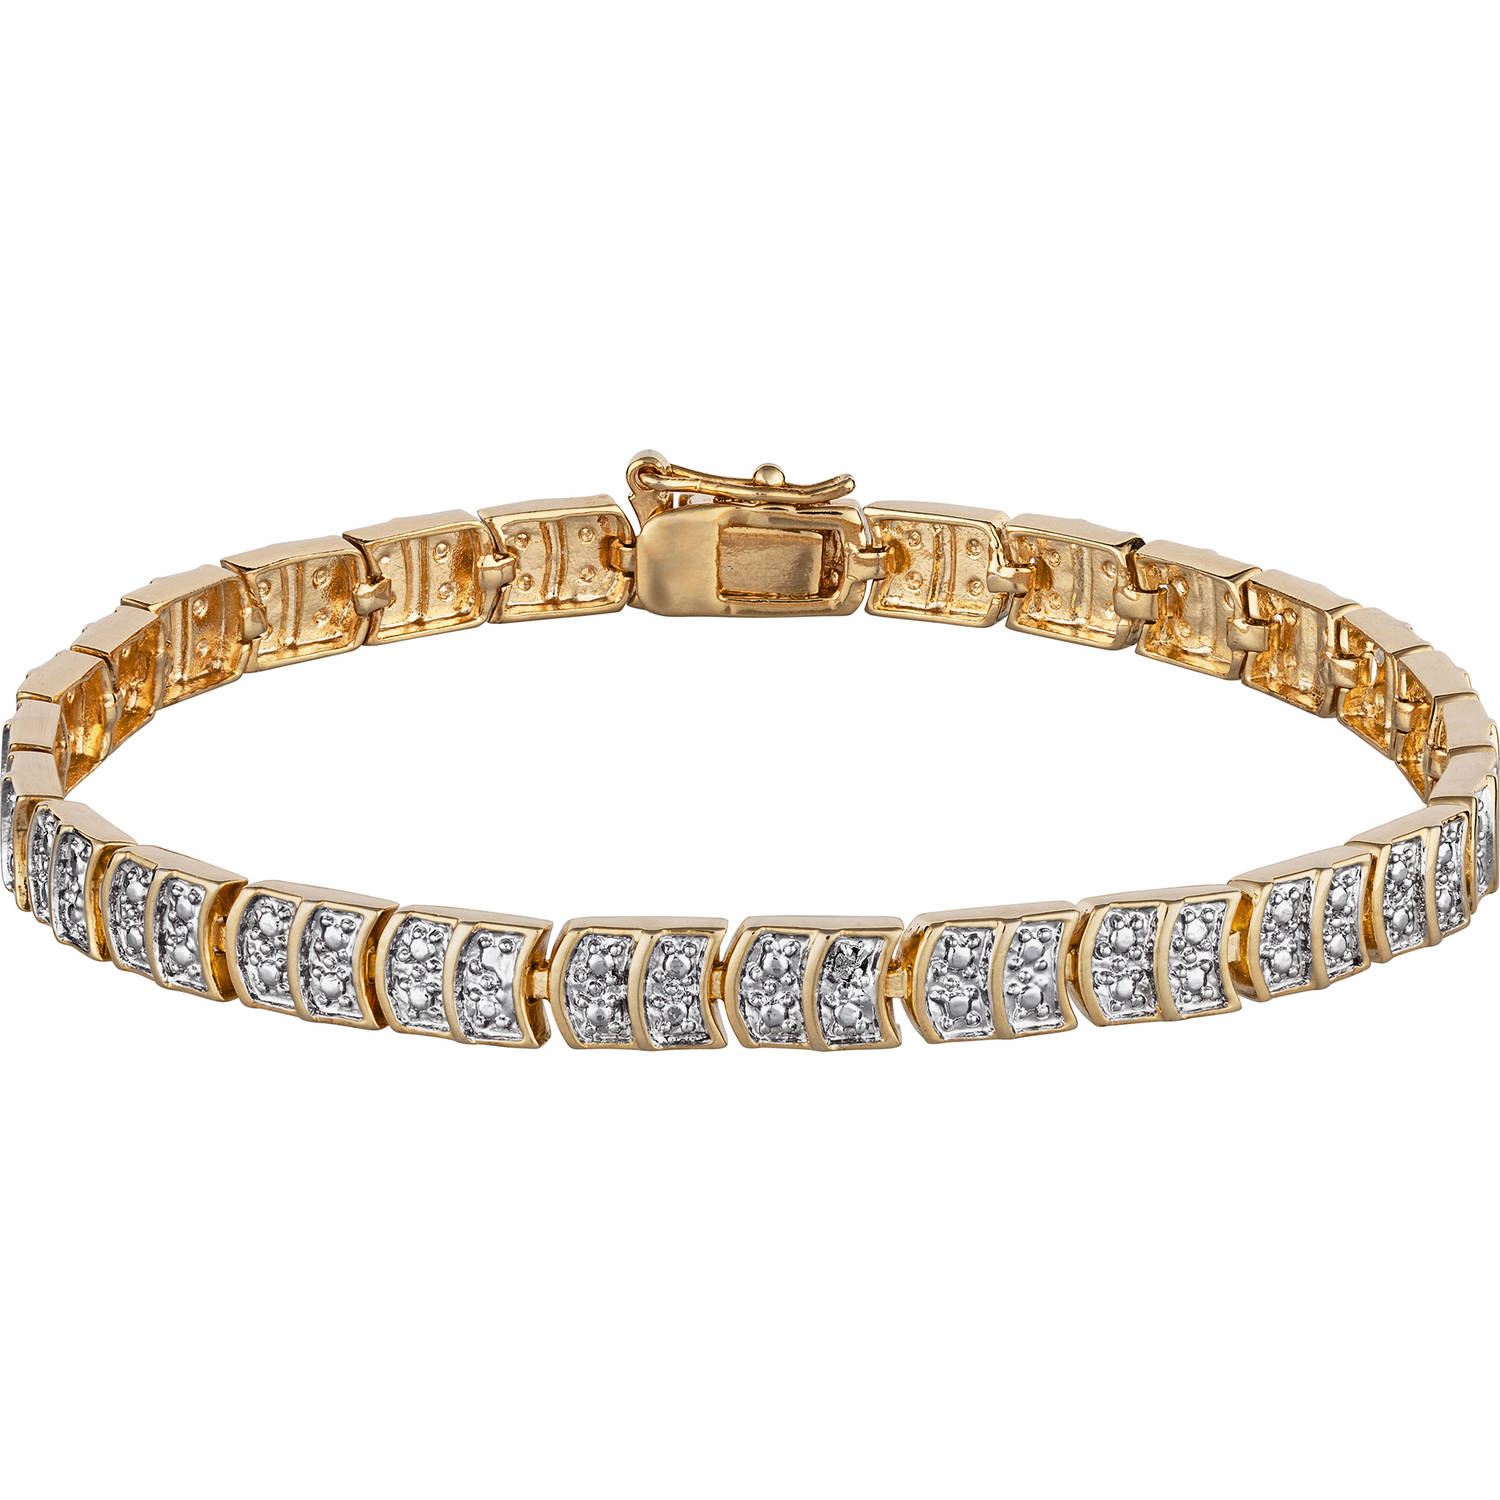 Diamond Accent 14kt Gold-Plated Tennis Bracelet, 8